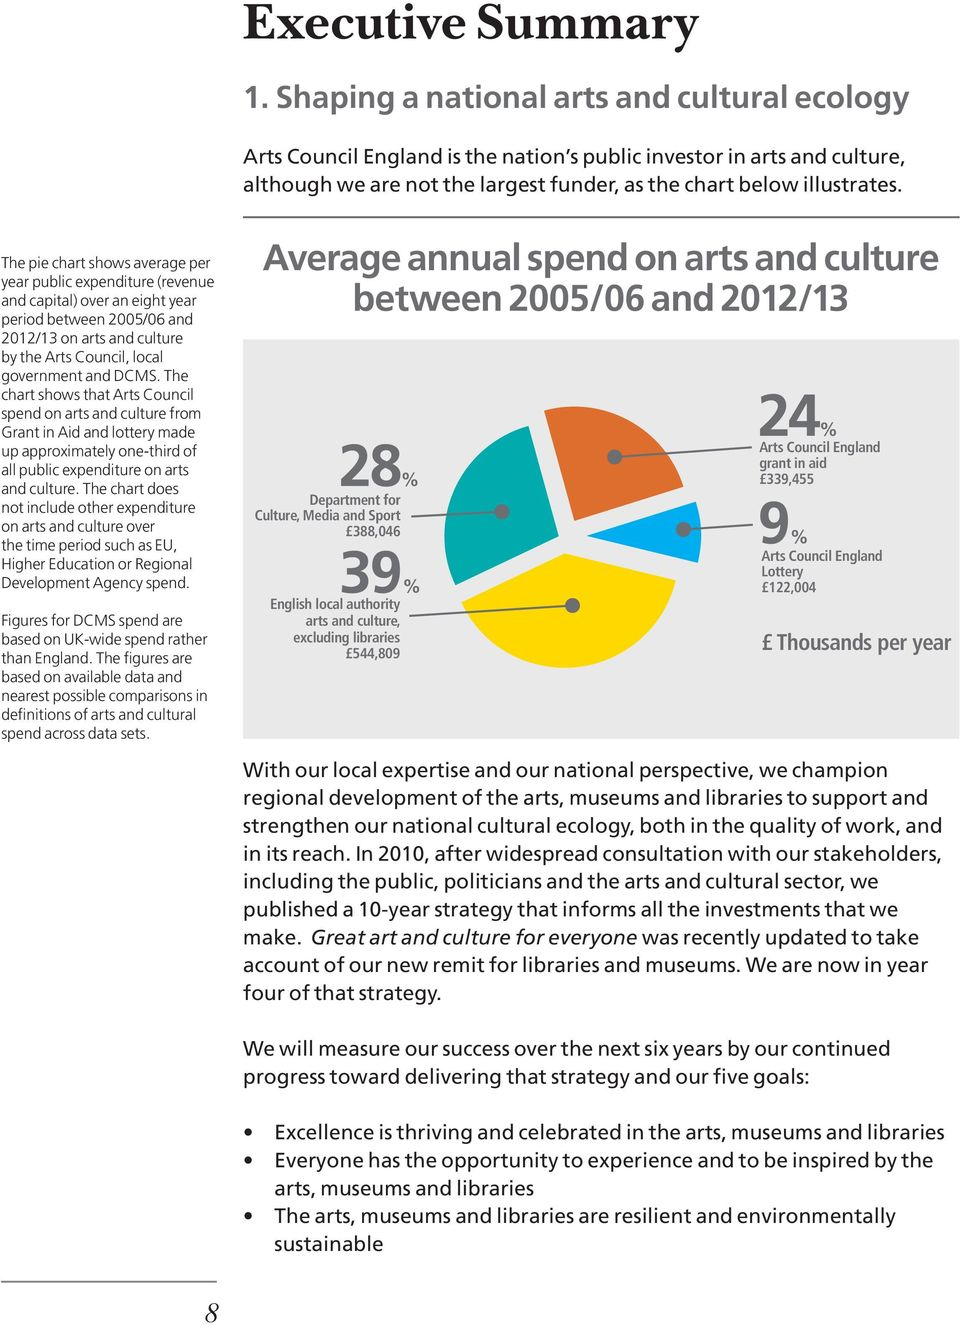 The pie chart shows average per year public expenditure (revenue and capital) over an eight year period between 2005/06 and 2012/13 on arts and culture by the Arts Council, local government and DCMS.